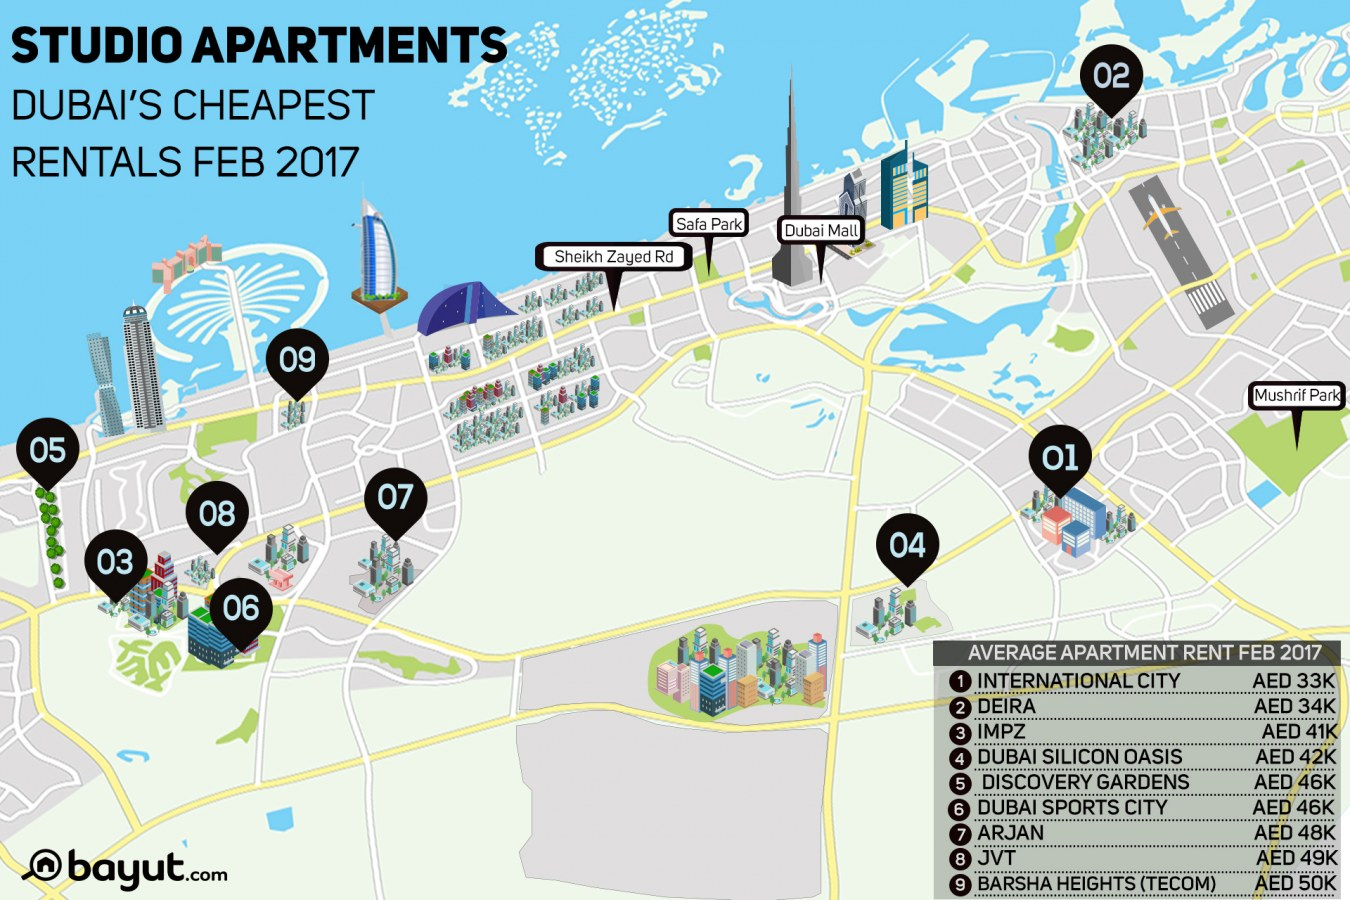 Inforgraphic about cheapest studio unit renting areas in Dubai in February 2017